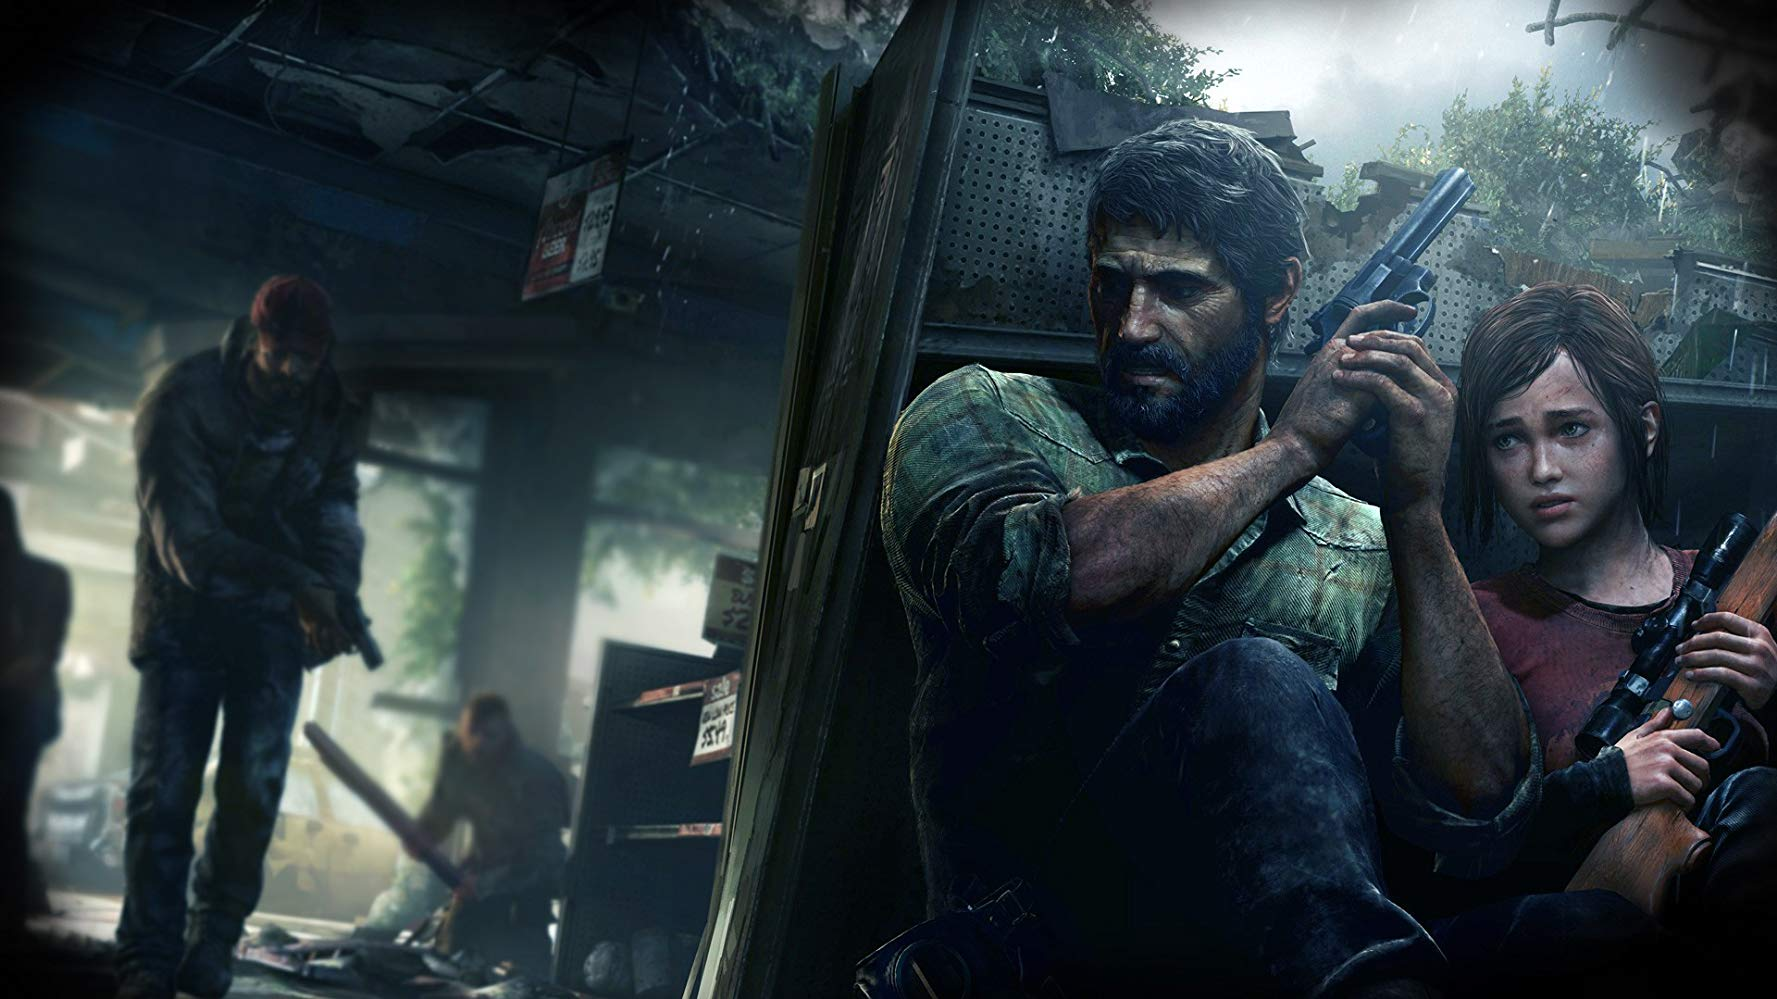 Promo for the video game The Last of Us